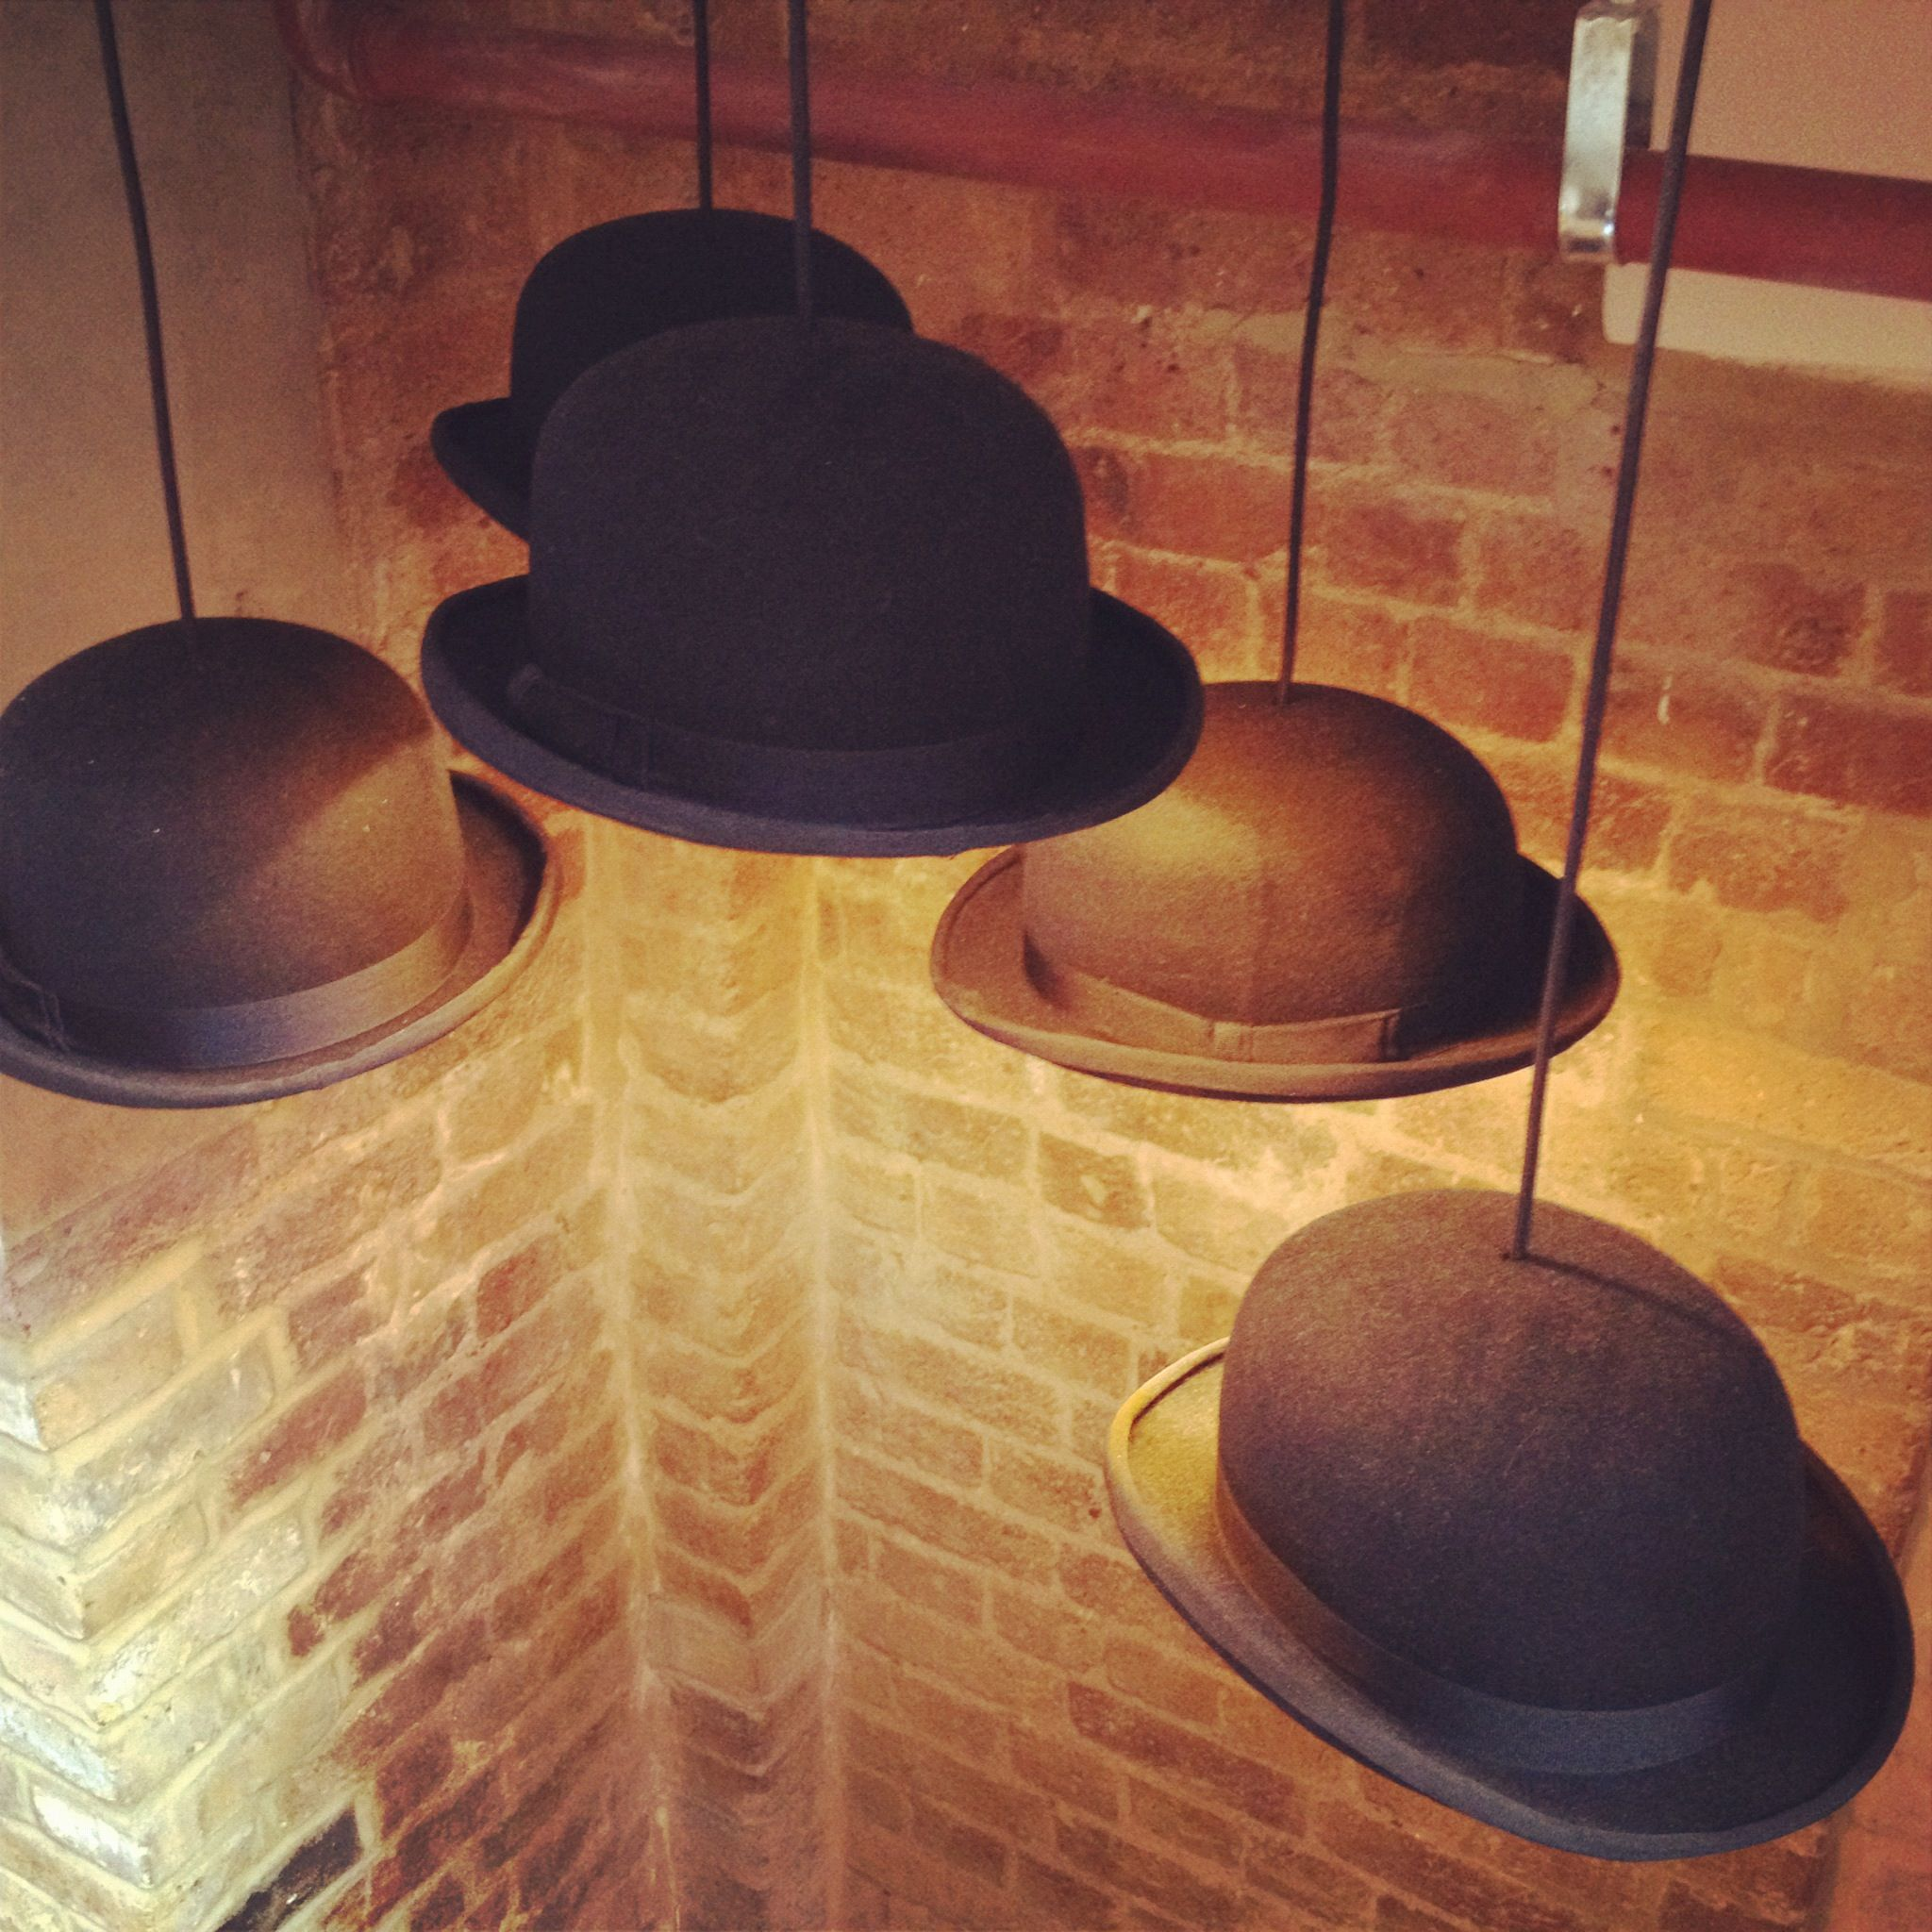 Bowler hat lamp shades i want this in my home pinterest bowler bowler hat lamp shades aloadofball Choice Image